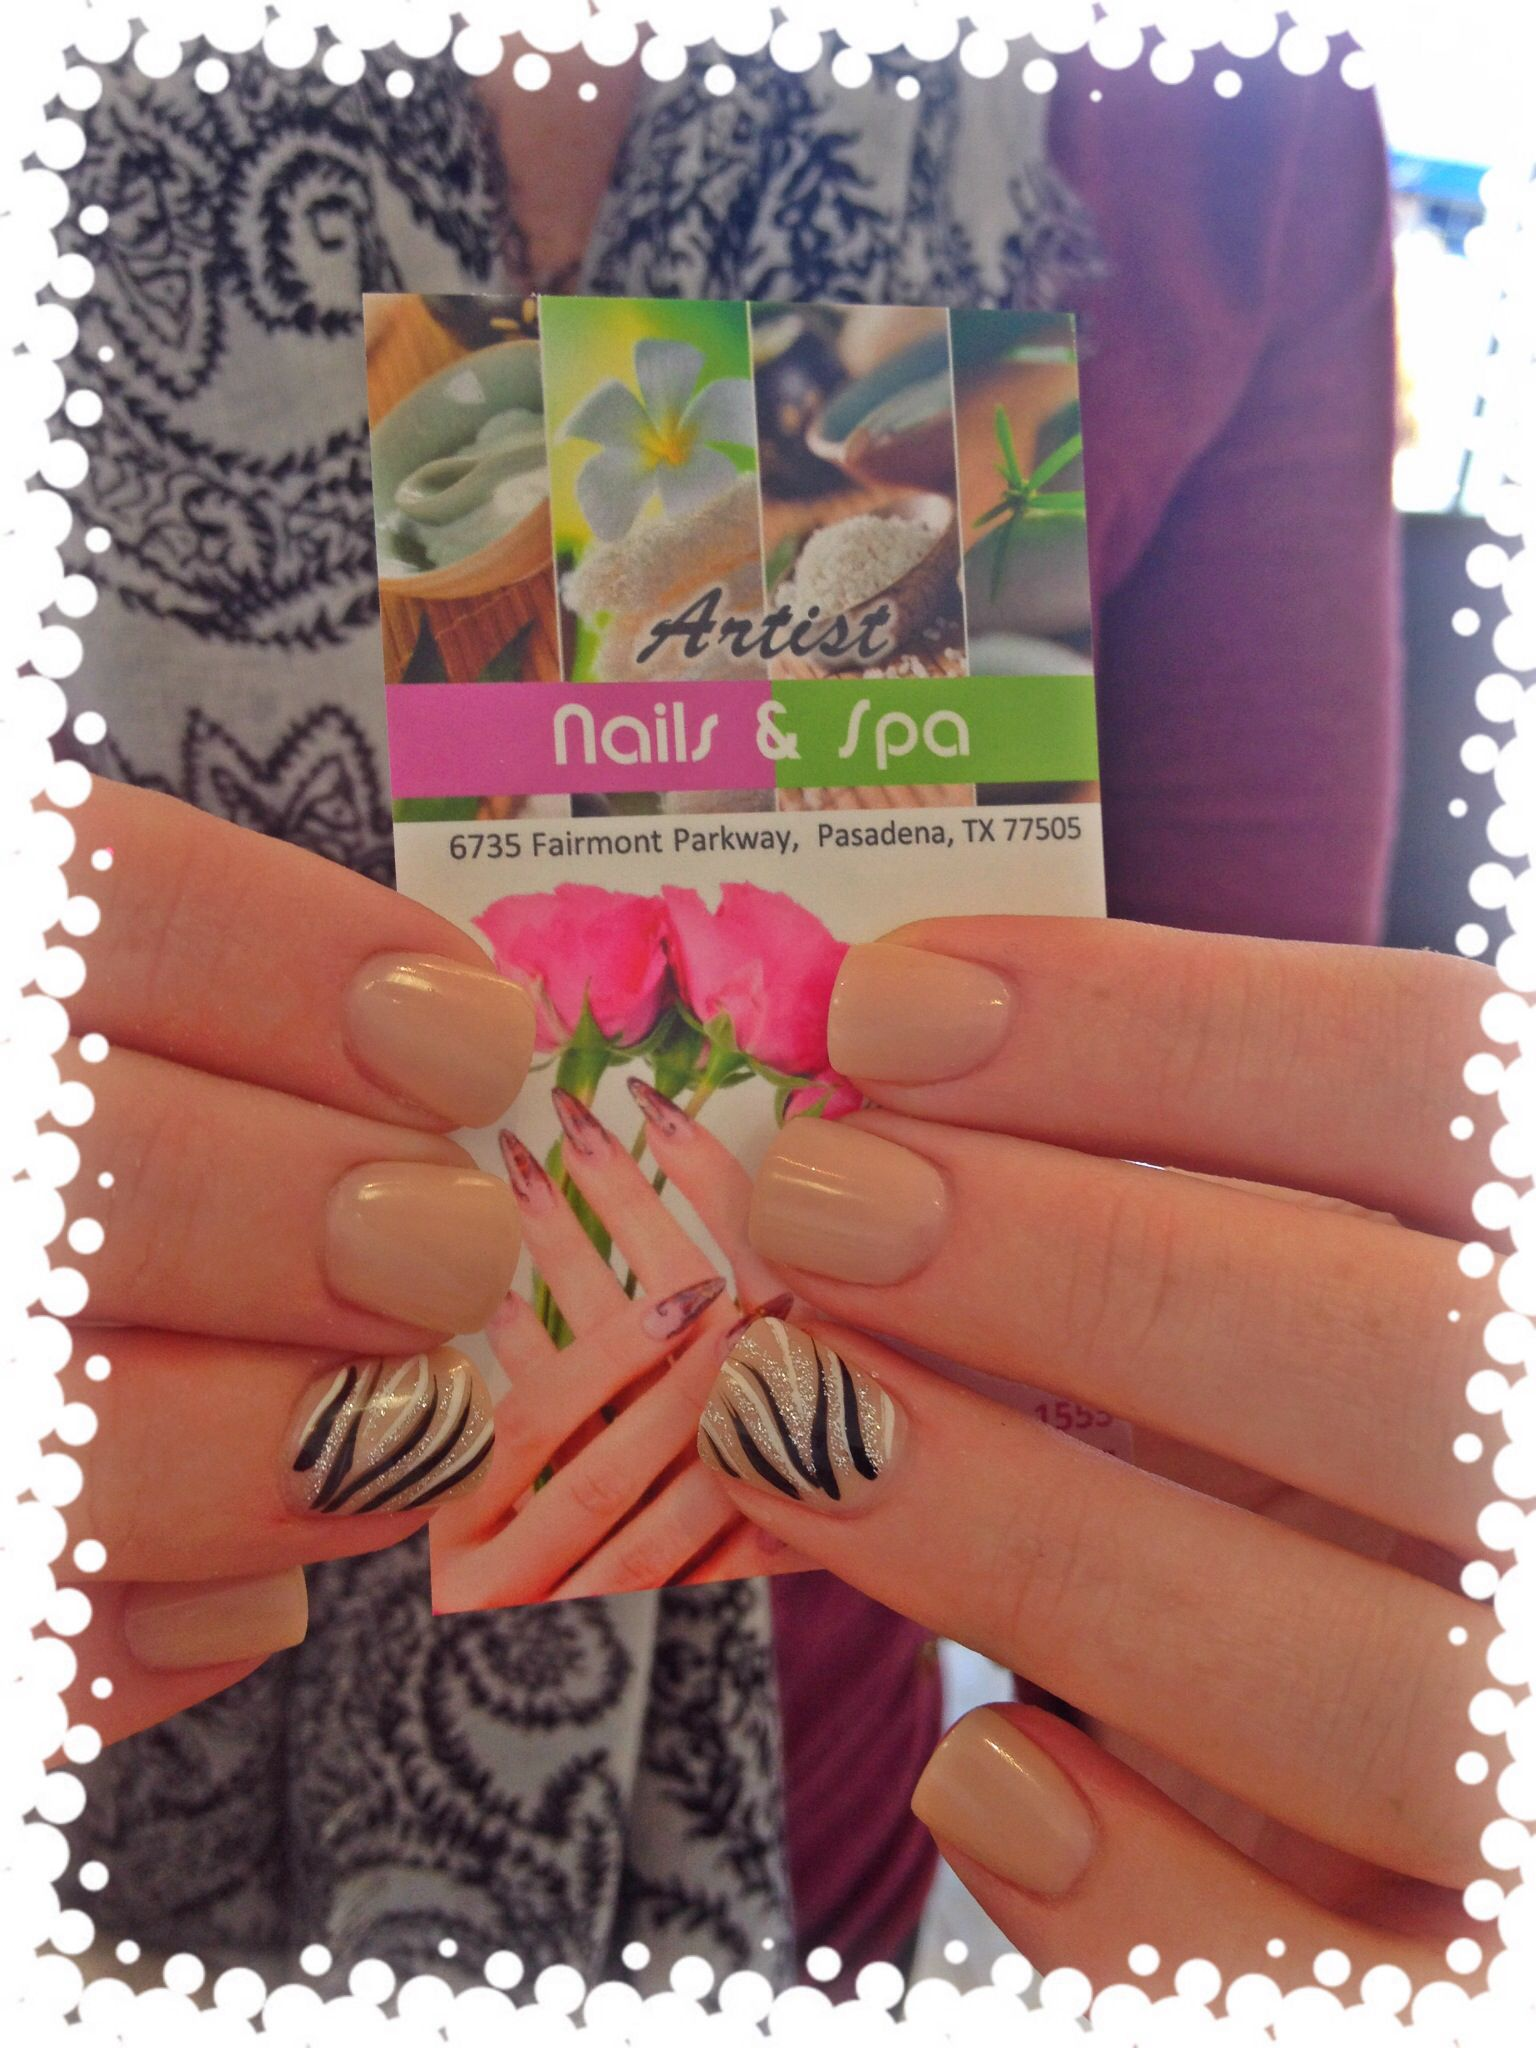 Nude nails with a zebra designs | ARTIST NAILS AND SPA | Pinterest ...